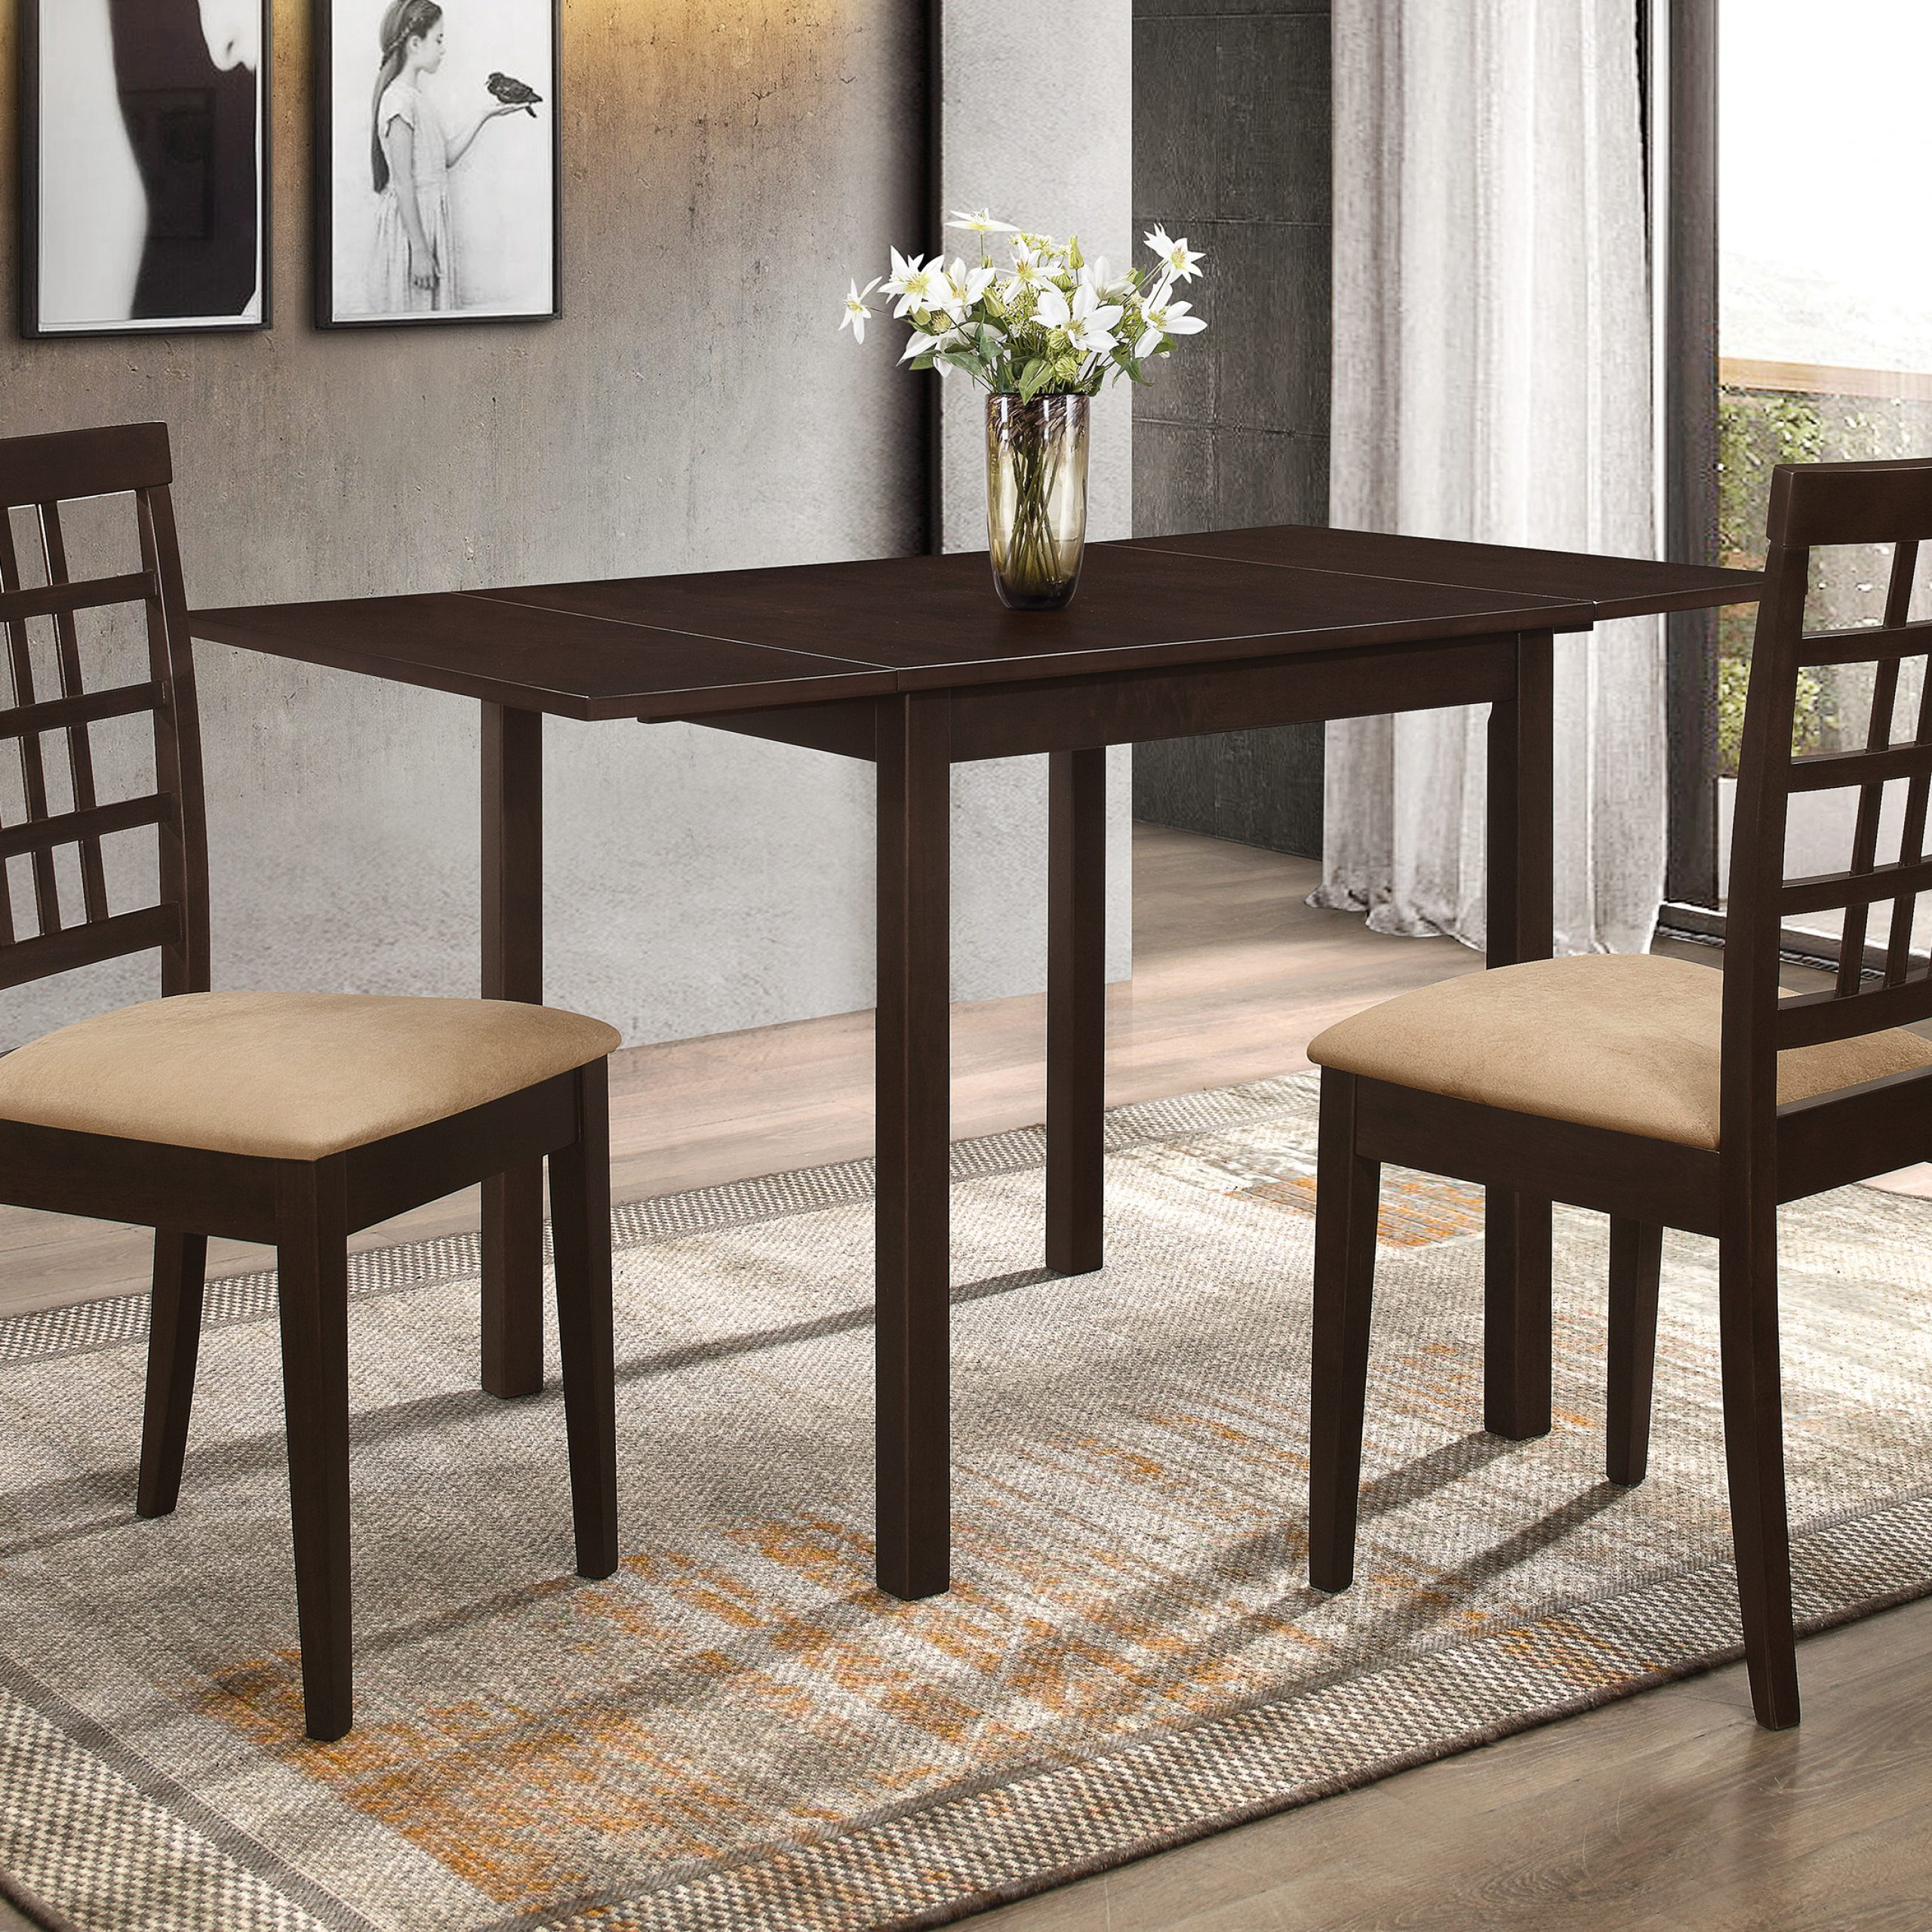 Recent Transitional 4 Seating Drop Leaf Casual Dining Tables Regarding Kelso Rectangular Dining Table With Drop Leaf Cappuccino (View 16 of 25)